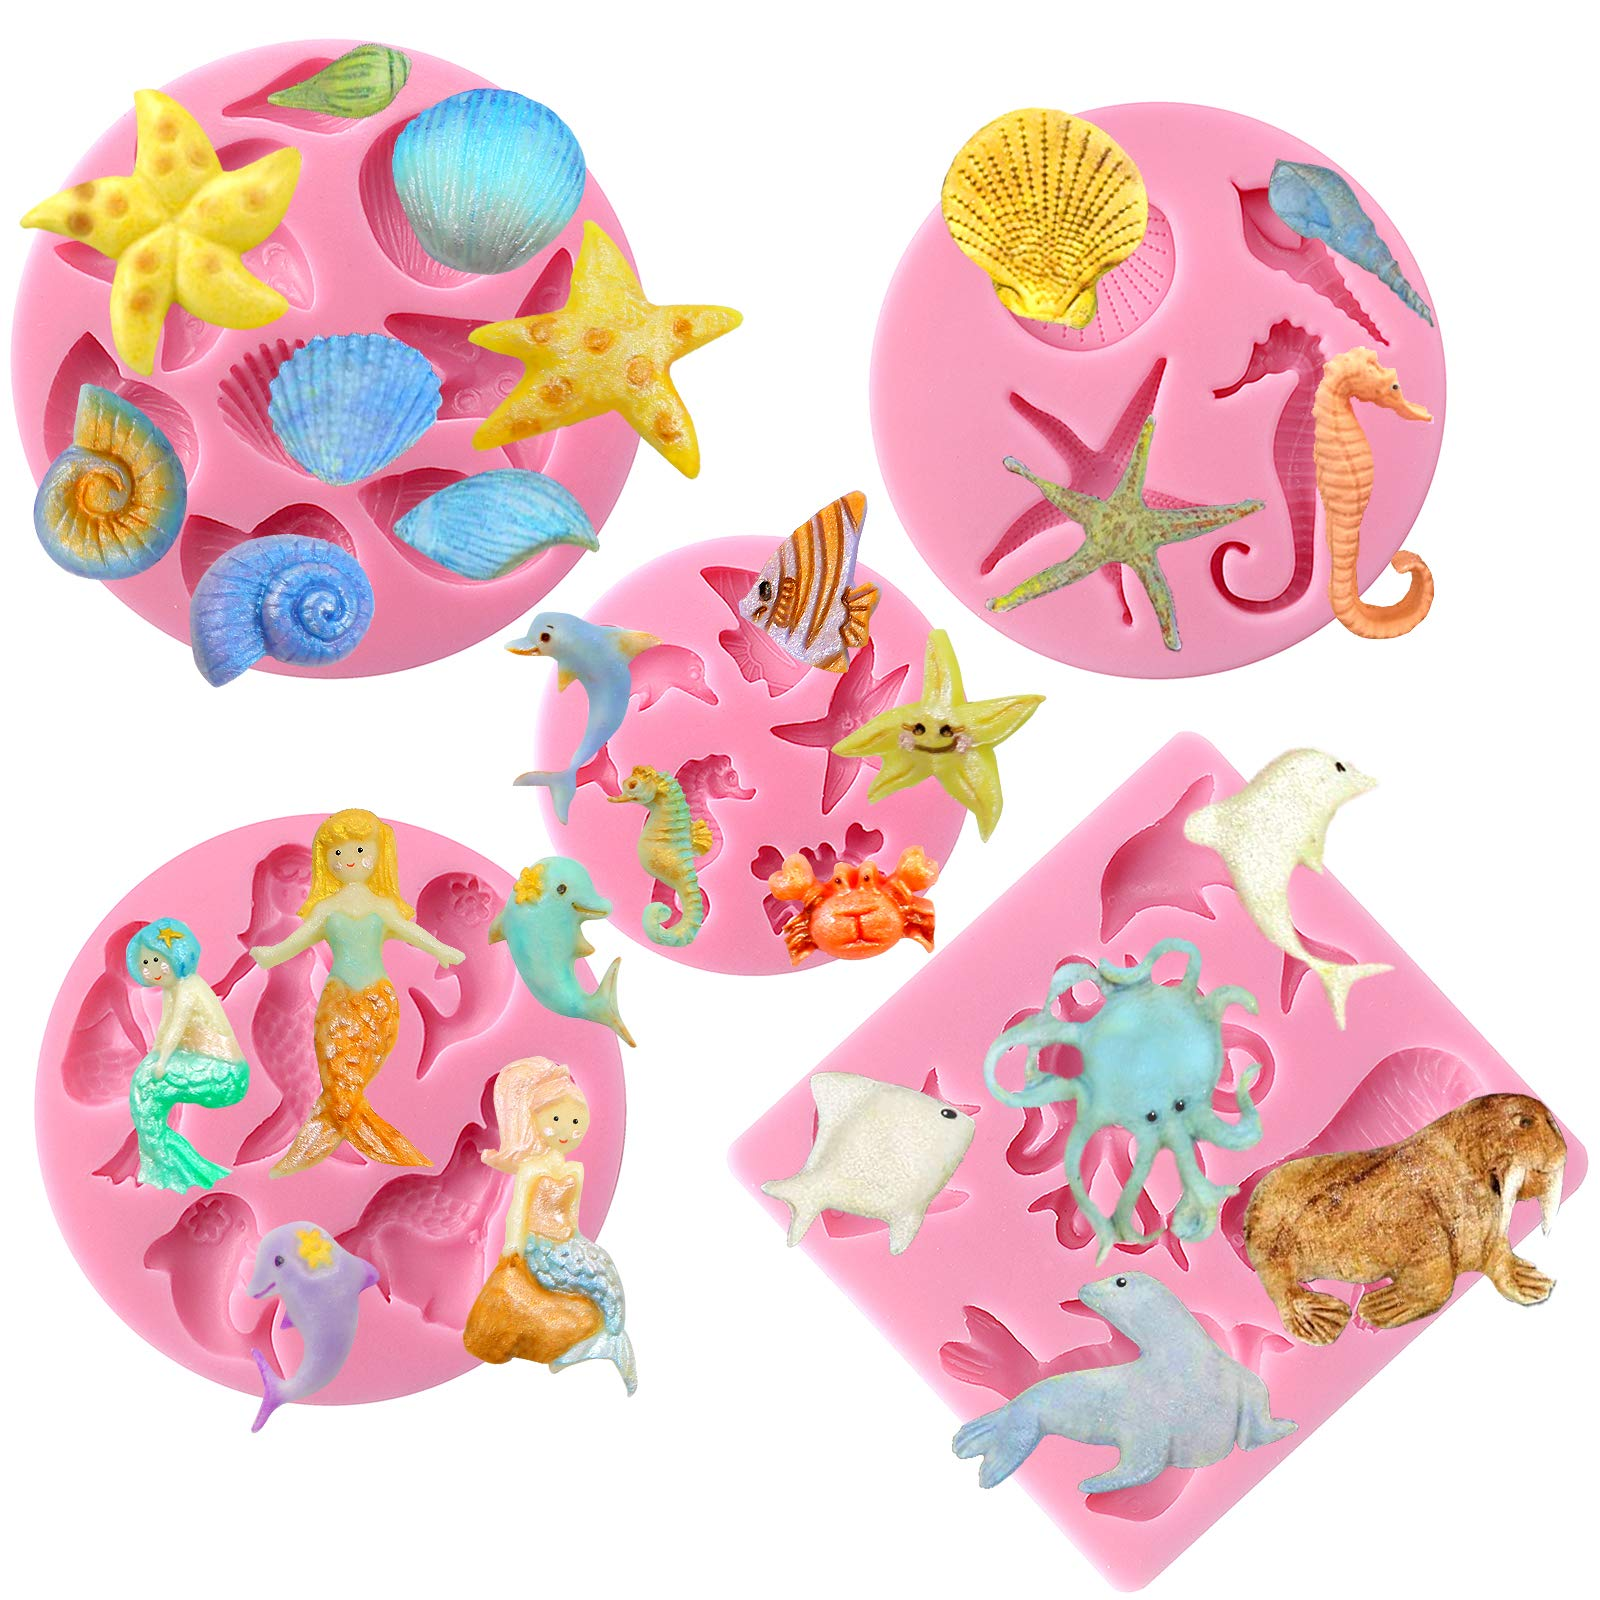 Funshowcase Mini Sea Creatures Summer Beach Theme Candy Silicone Mold for Sugarcraft, Cake Decoration, Cupcake Topper, Fondant, Jewelry, Polymer Clay, Crafting Projects, 5 in Set